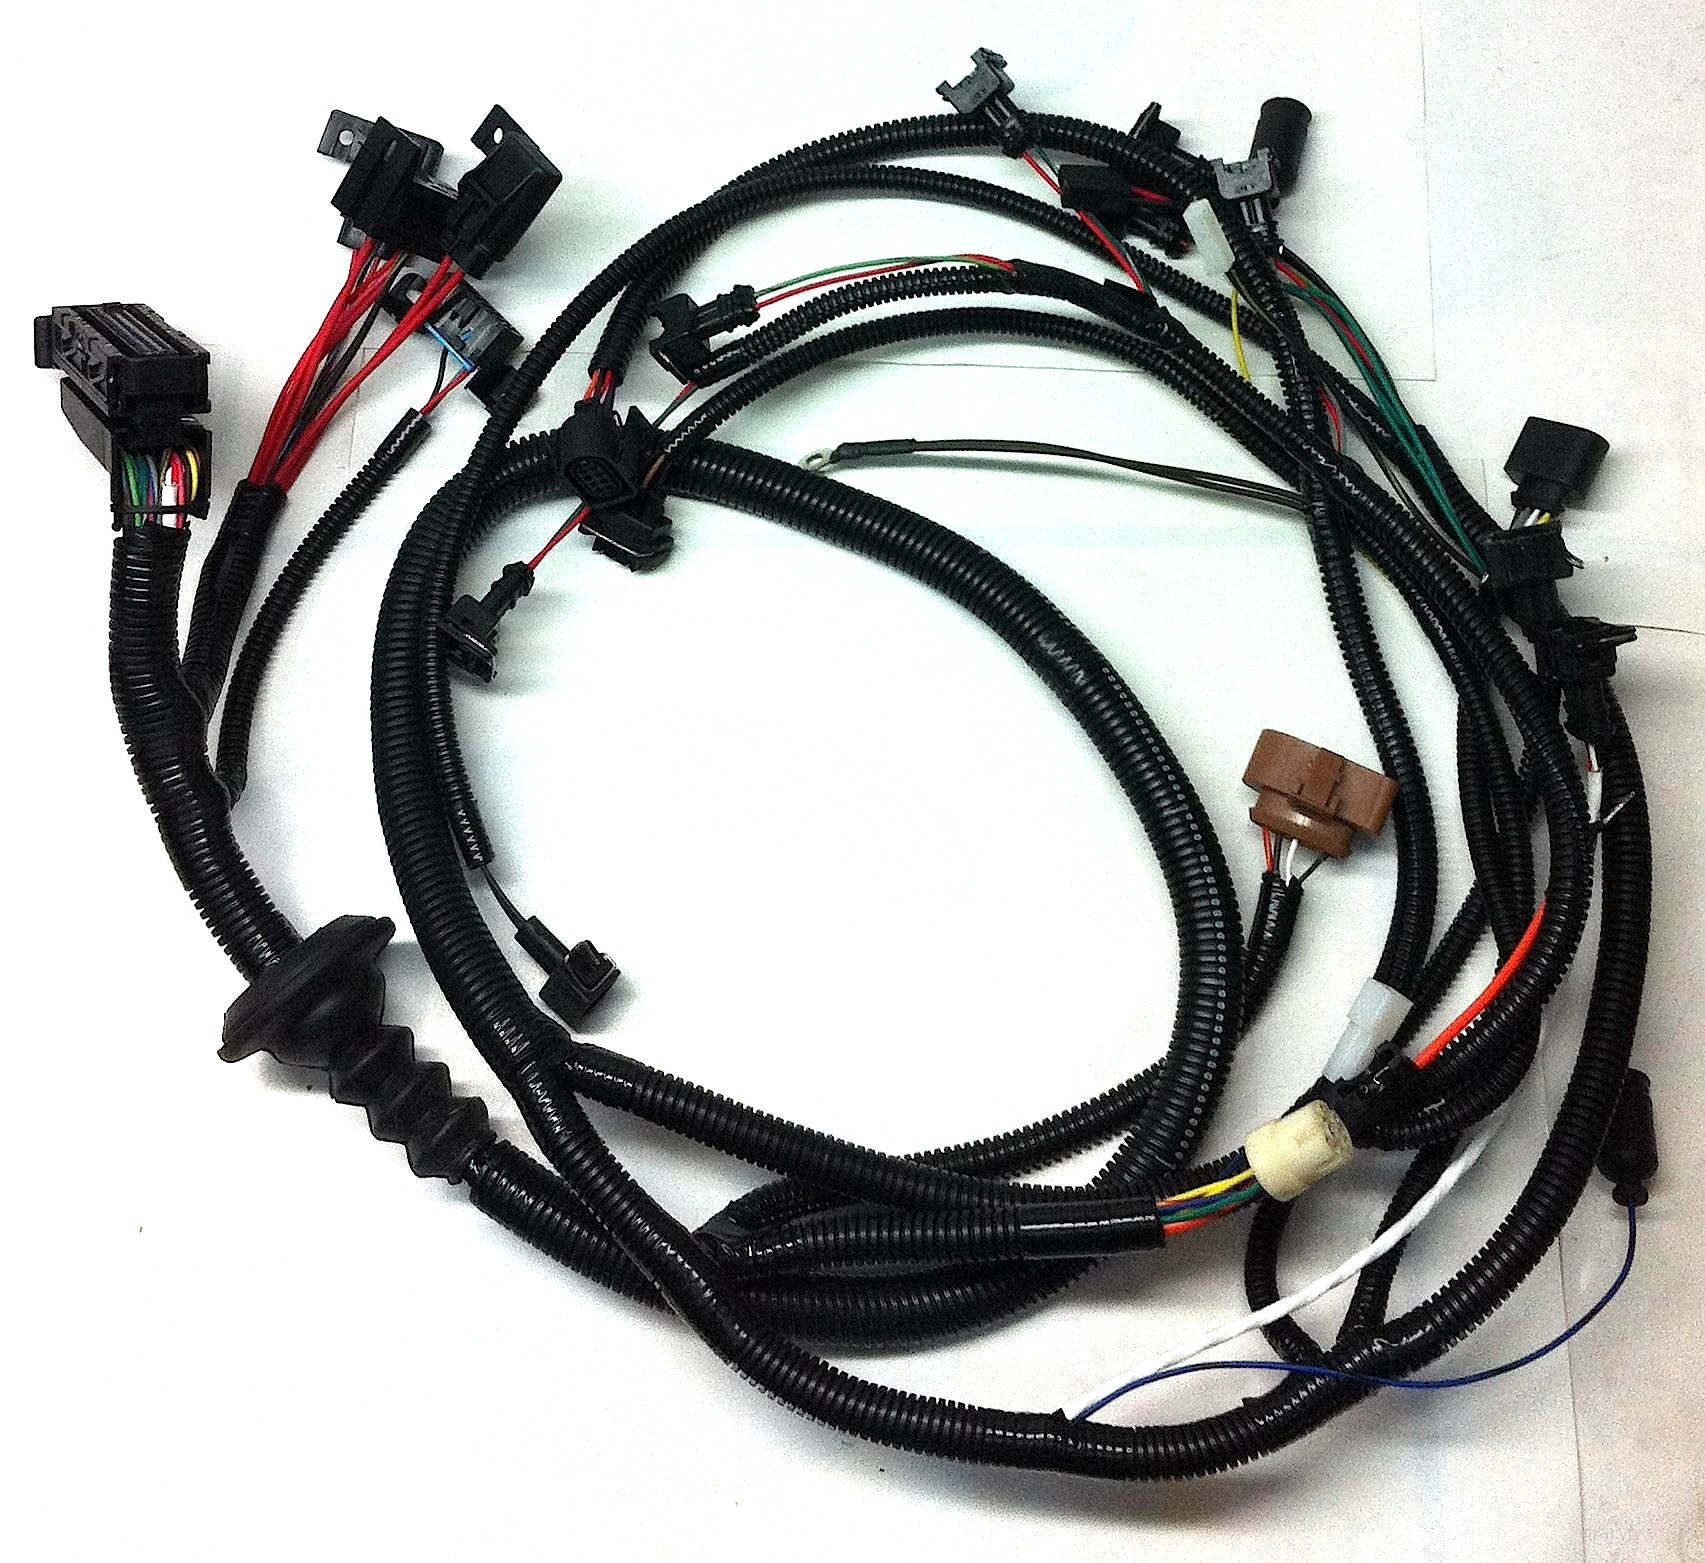 2lr tiico conversion wiring harness foreign auto supply inc rh foreignautosupply com Automotive Wiring Harness Manufacturers Automotive Wiring Harness Manufacturers